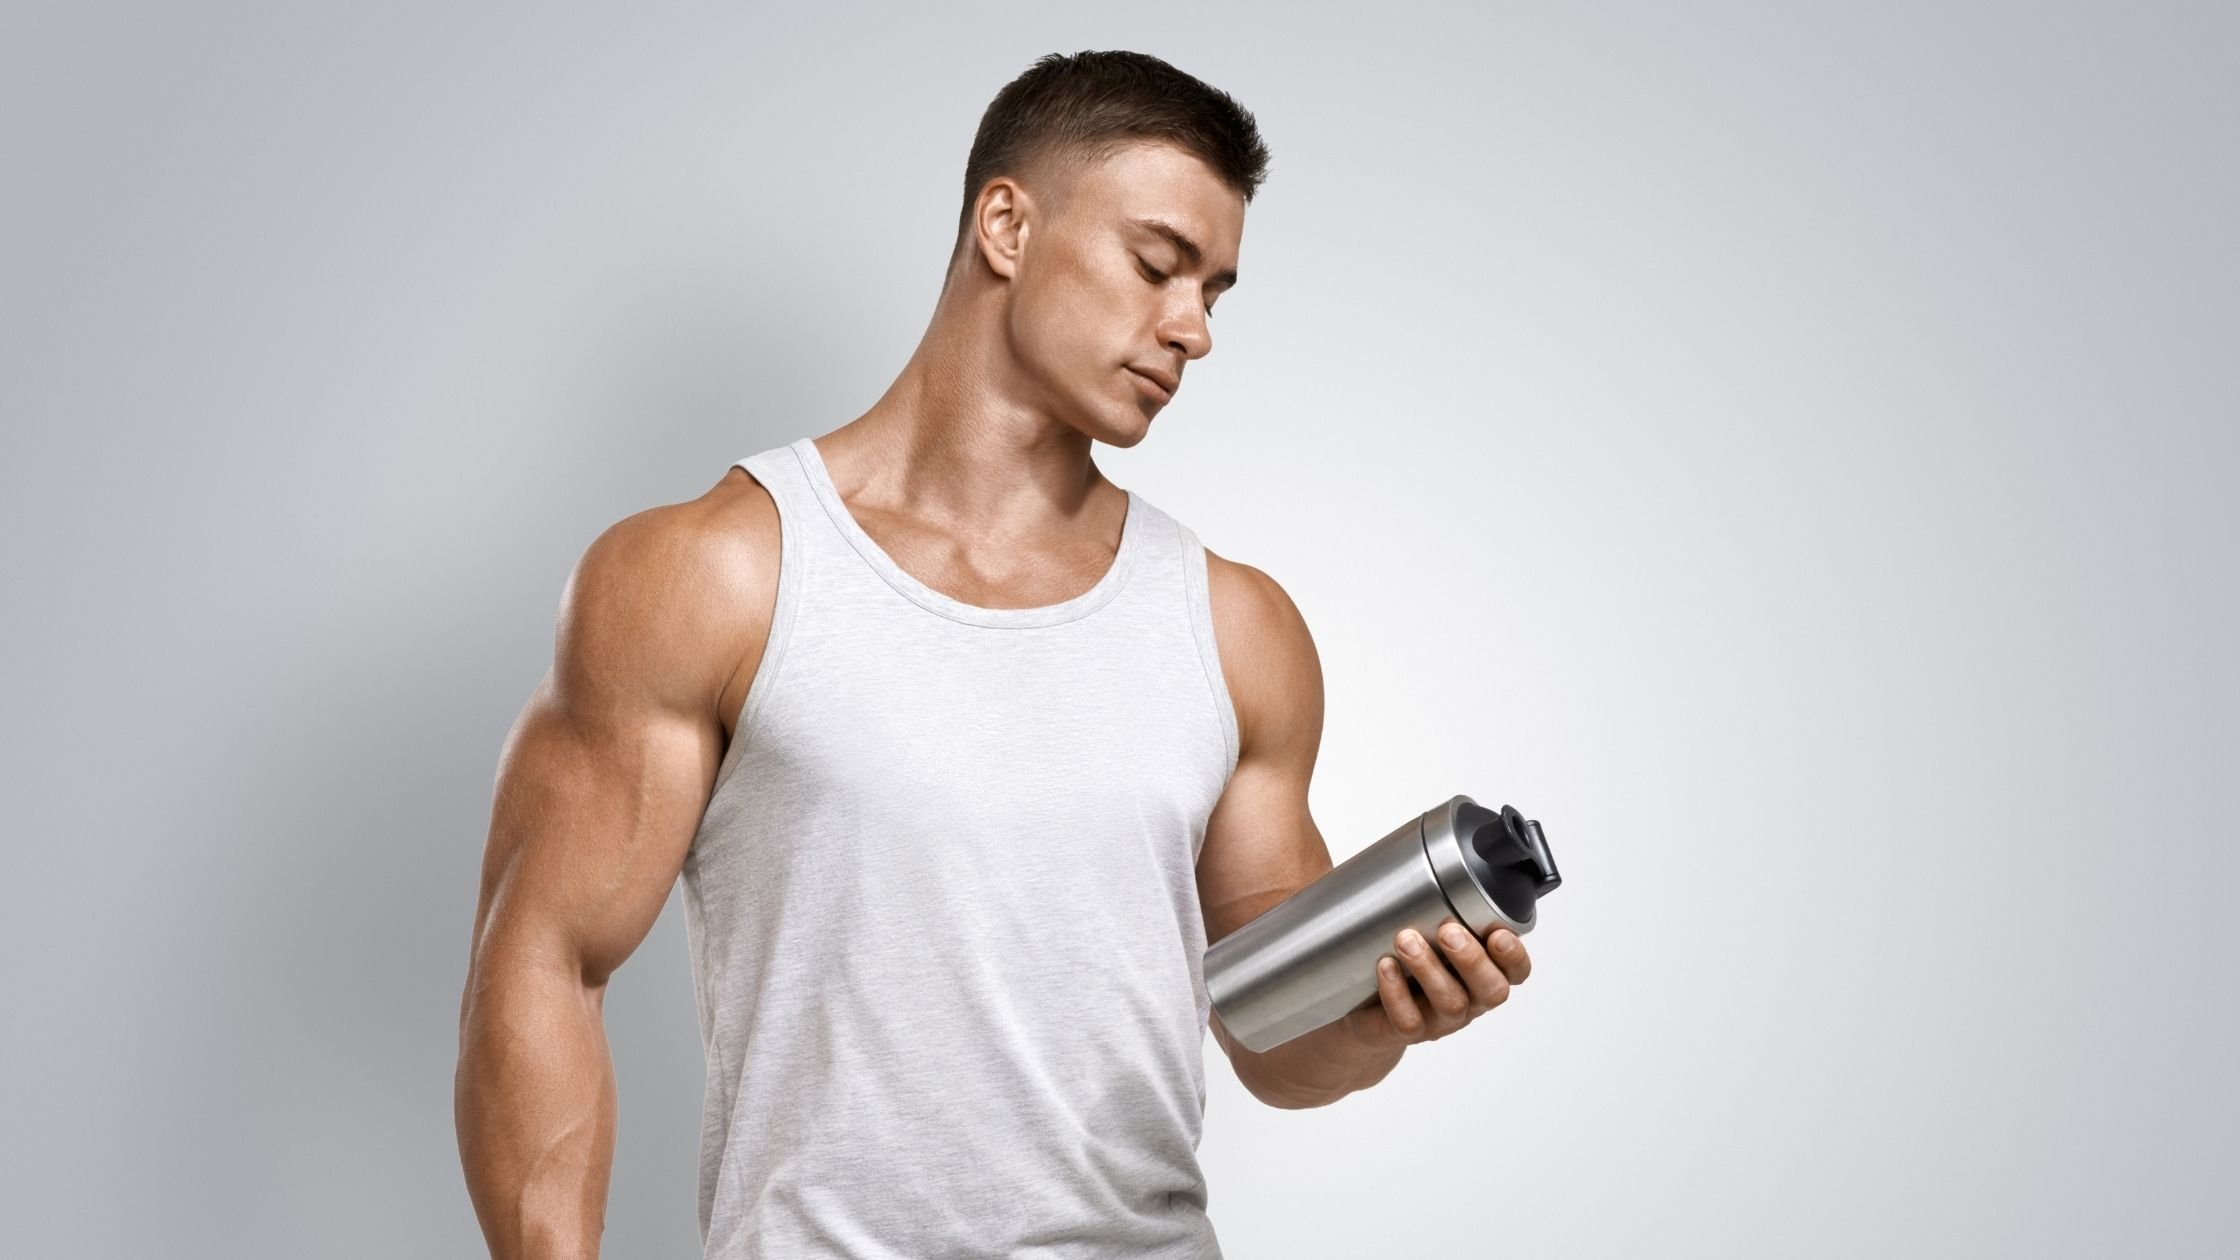 When to Drink Whey Protein